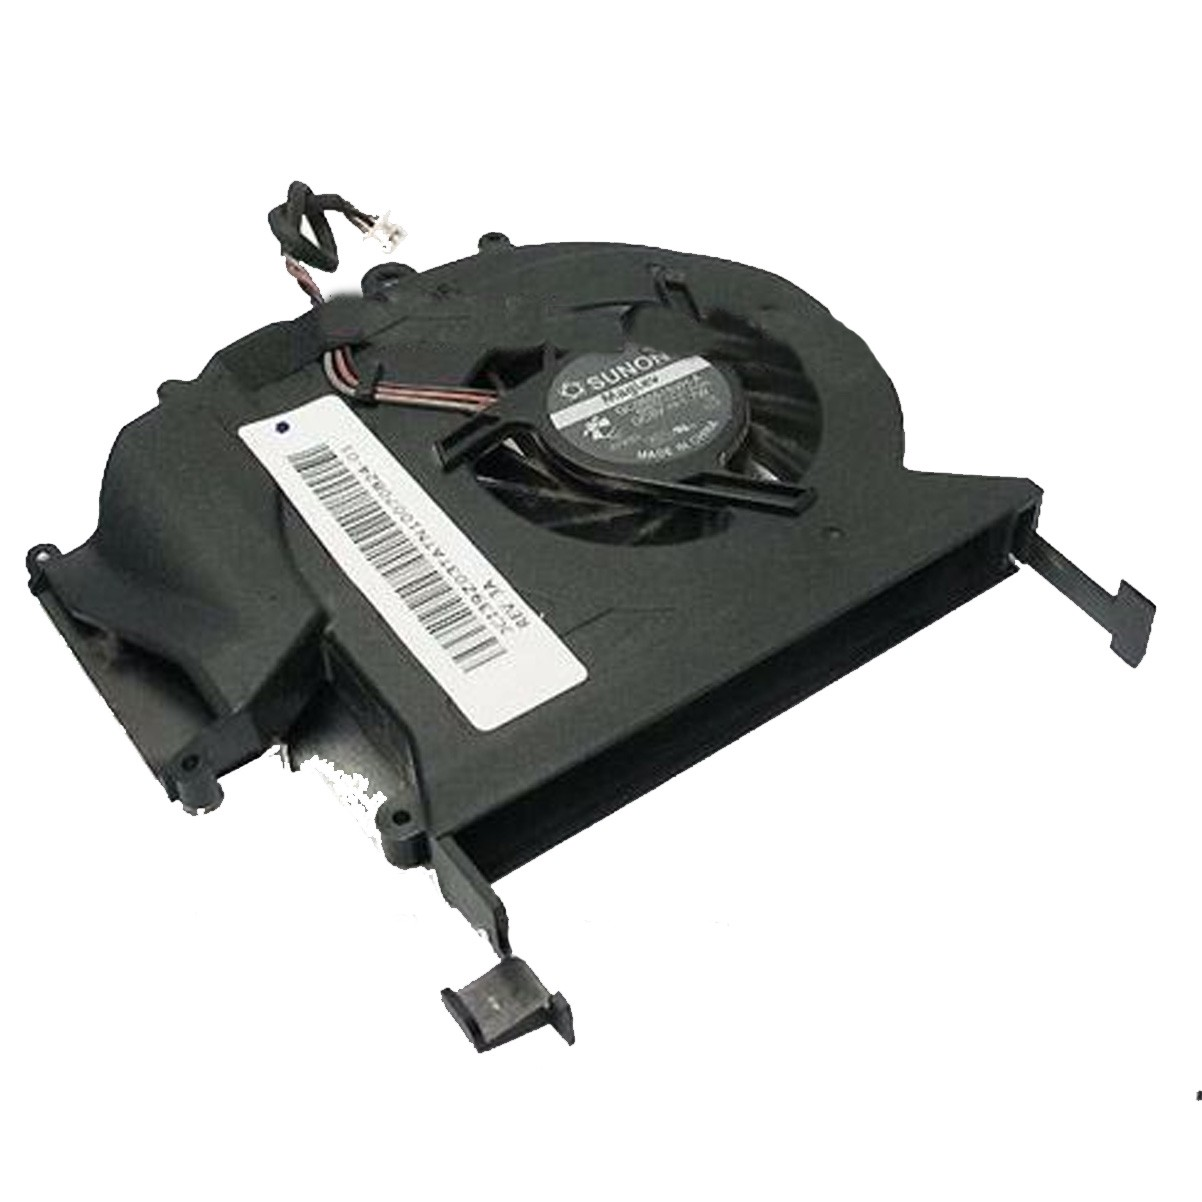 Cooler P/ Notebook PN:GC055515VH-A - Retirado